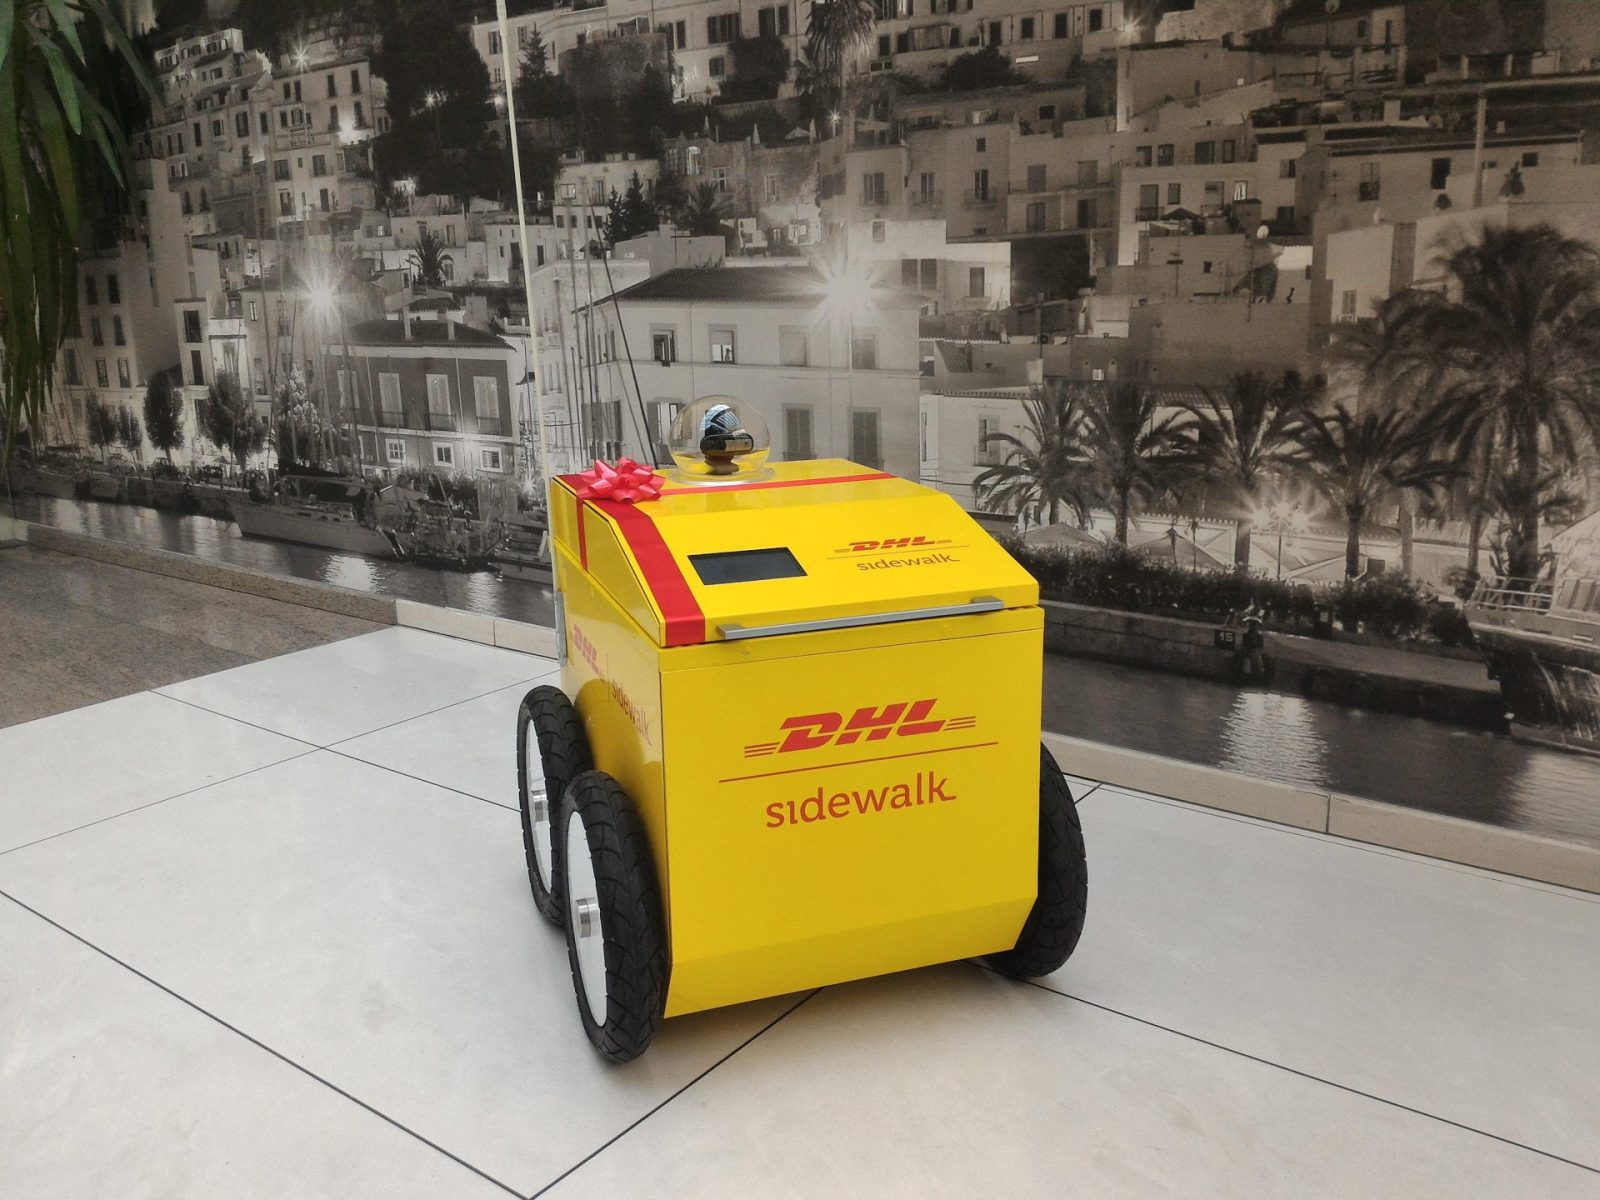 DHL design Robotics for improving logistics Challenge 2016